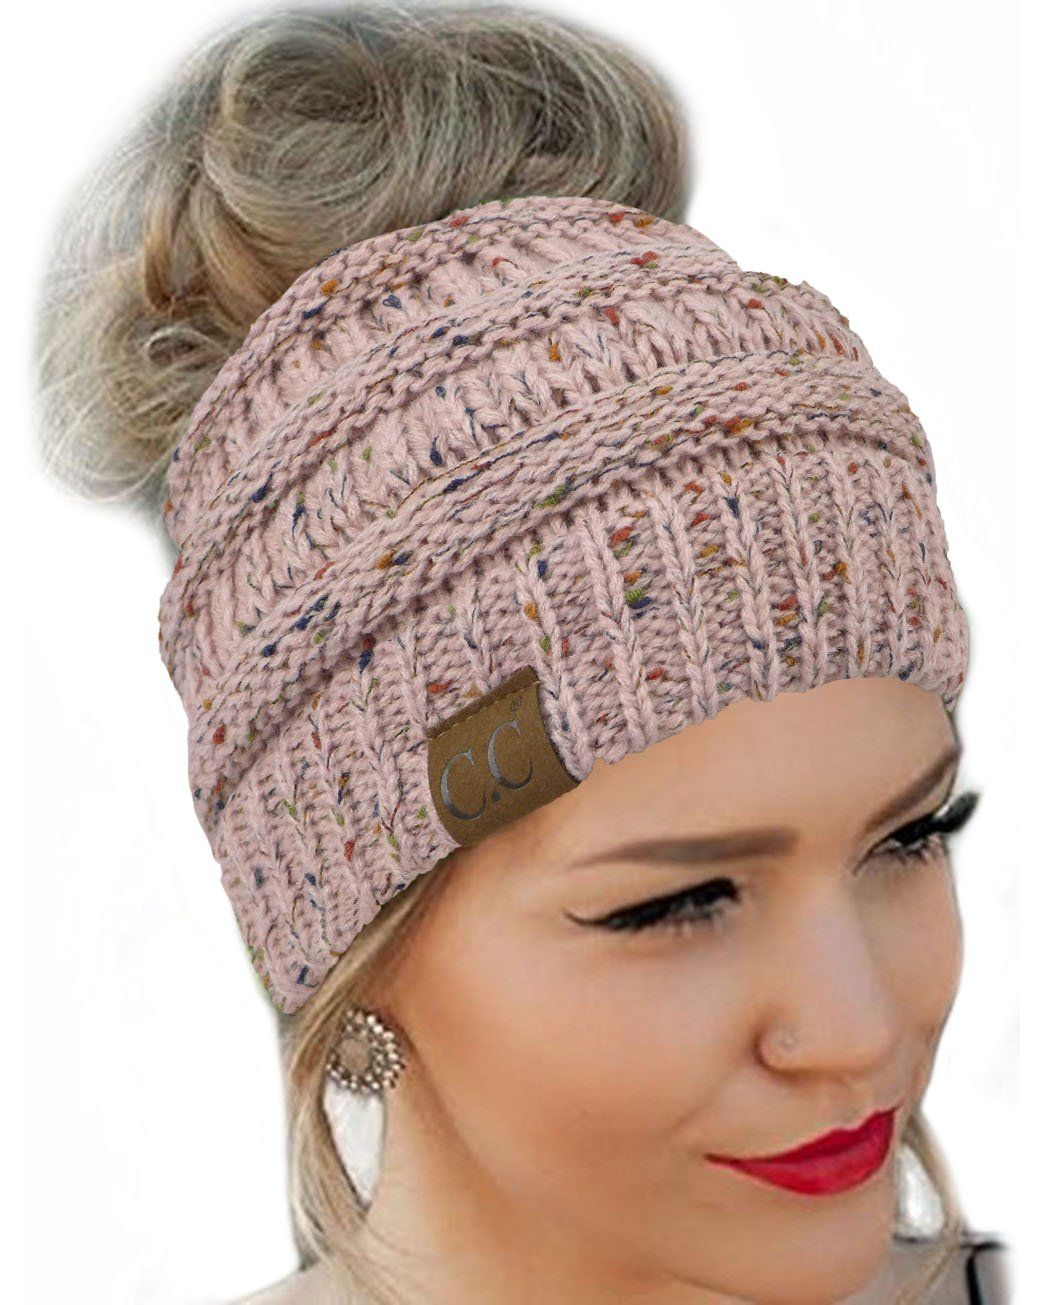 a6f3187ad82be Messy Bun Hat Beanie CC Quality Knit (Pink Flecked) at Amazon Women s  Clothing store